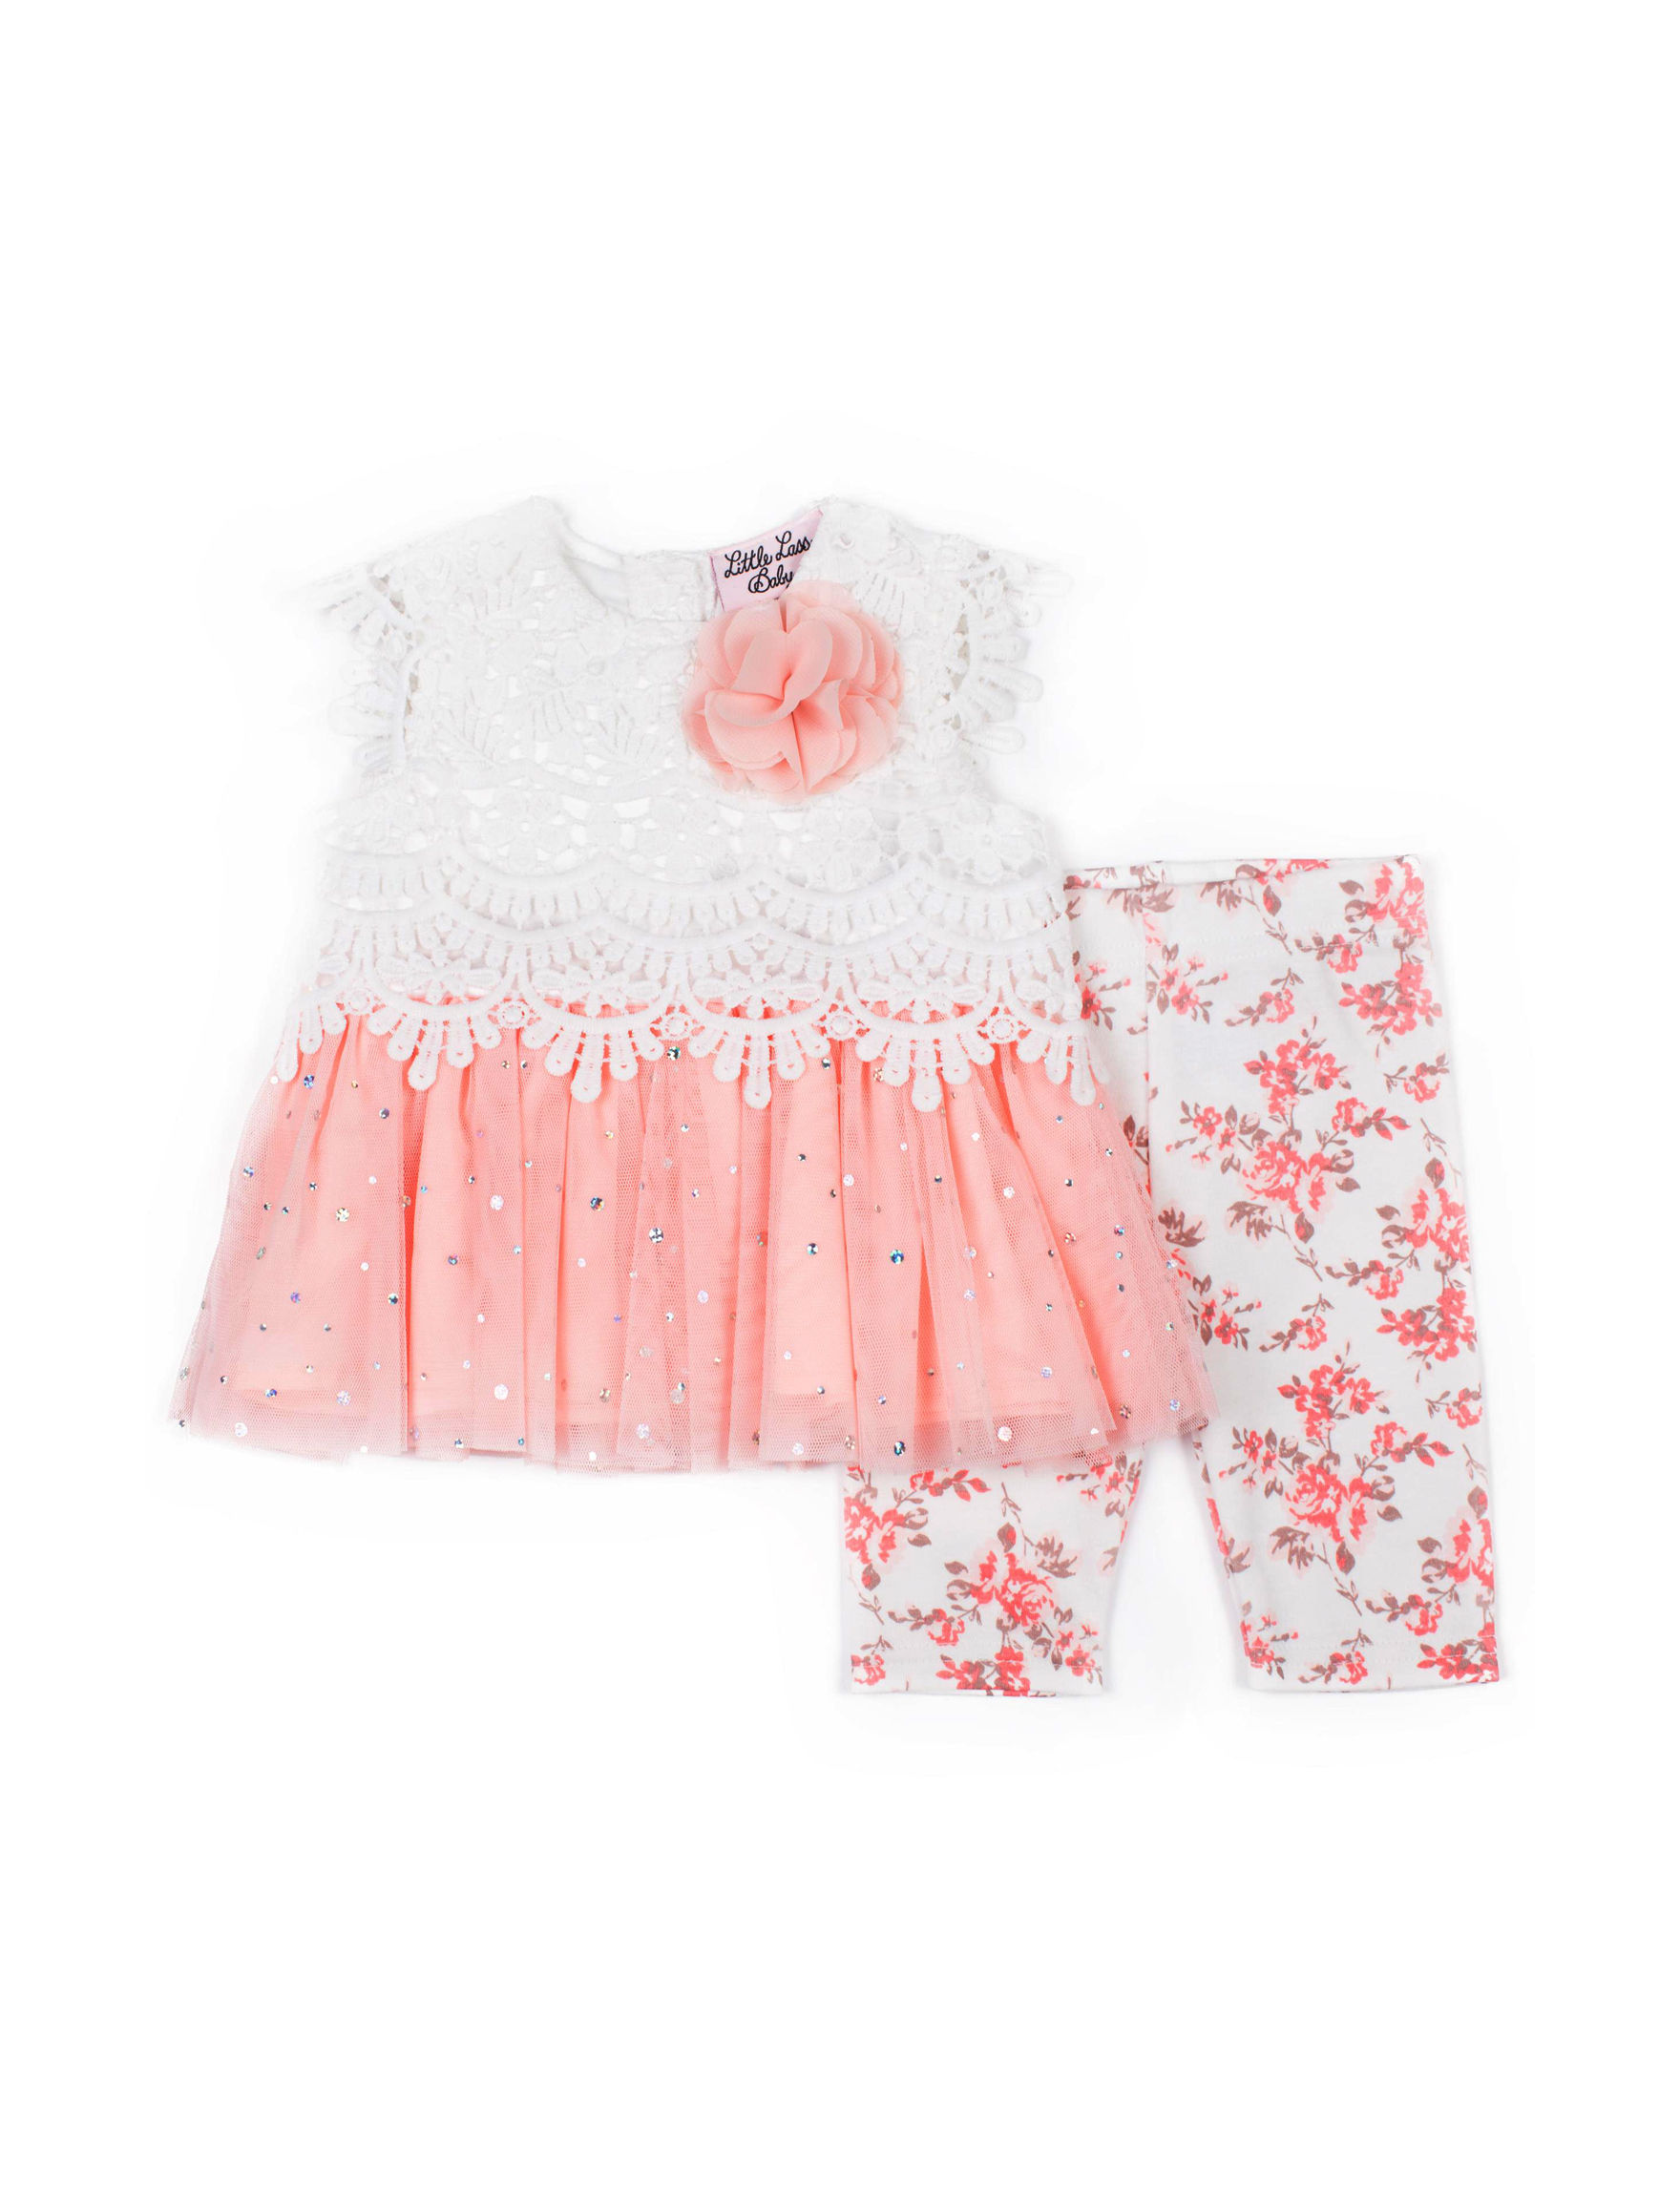 Little Lass White / Pink Floral